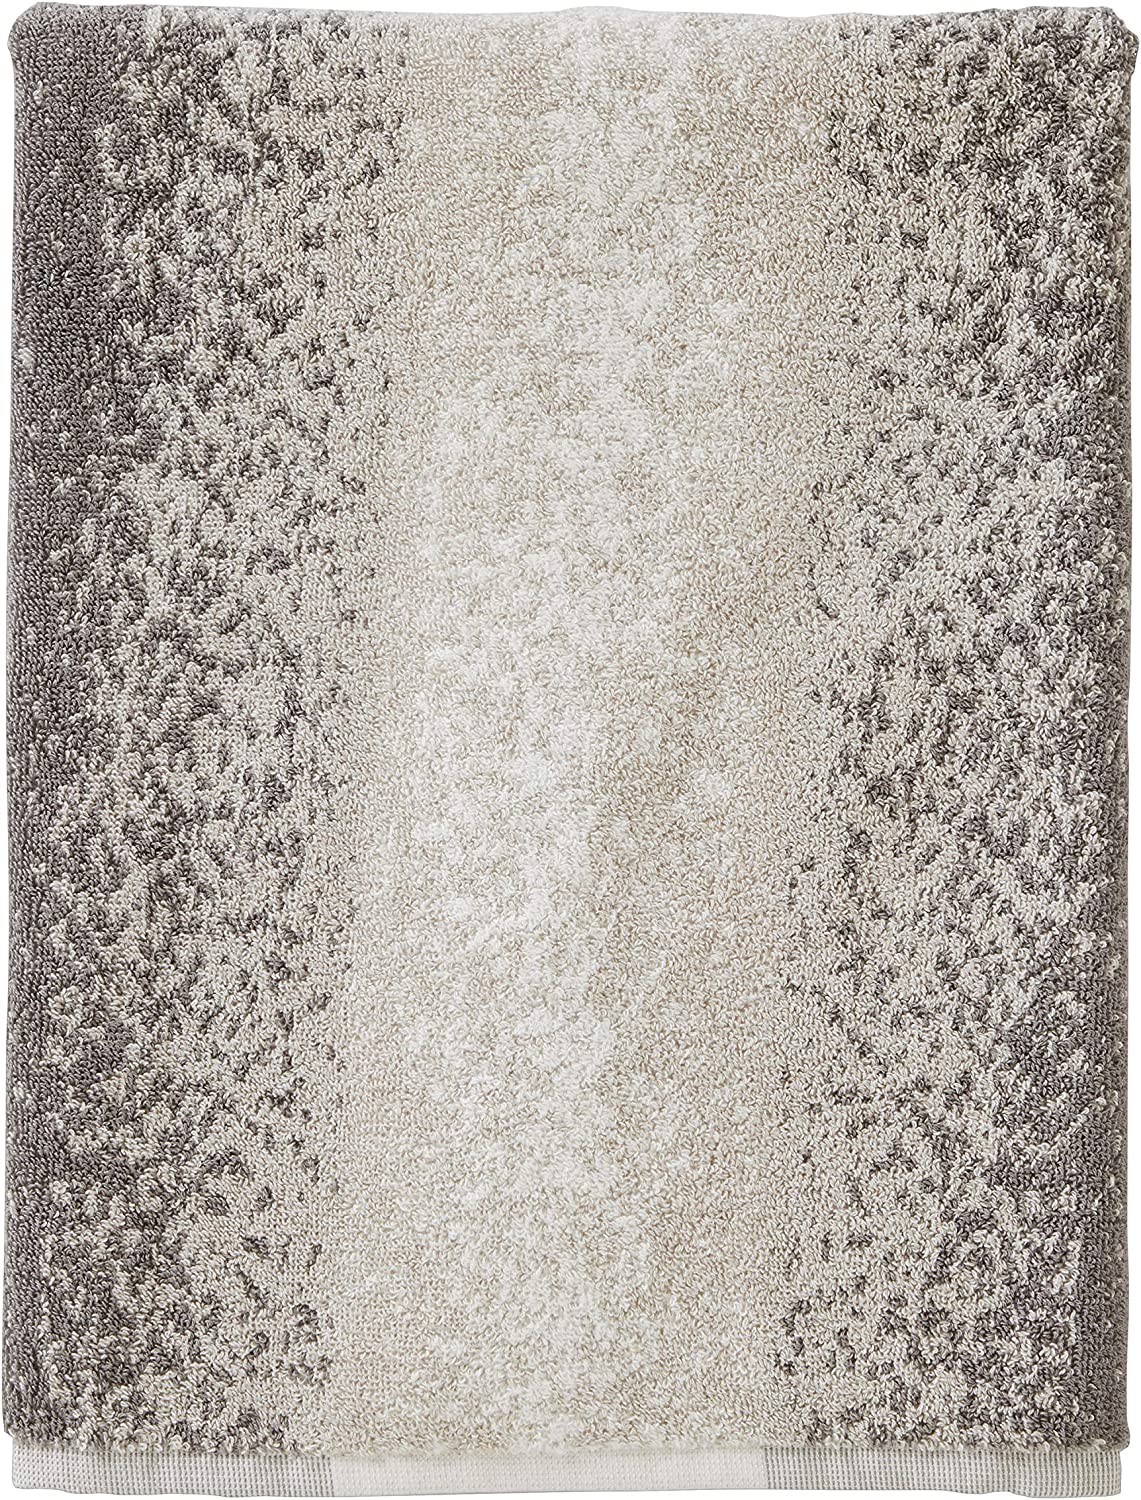 SKL HOME by Saturday Knight Ltd. Vern Yip Antelope Bath Towel, Neutral